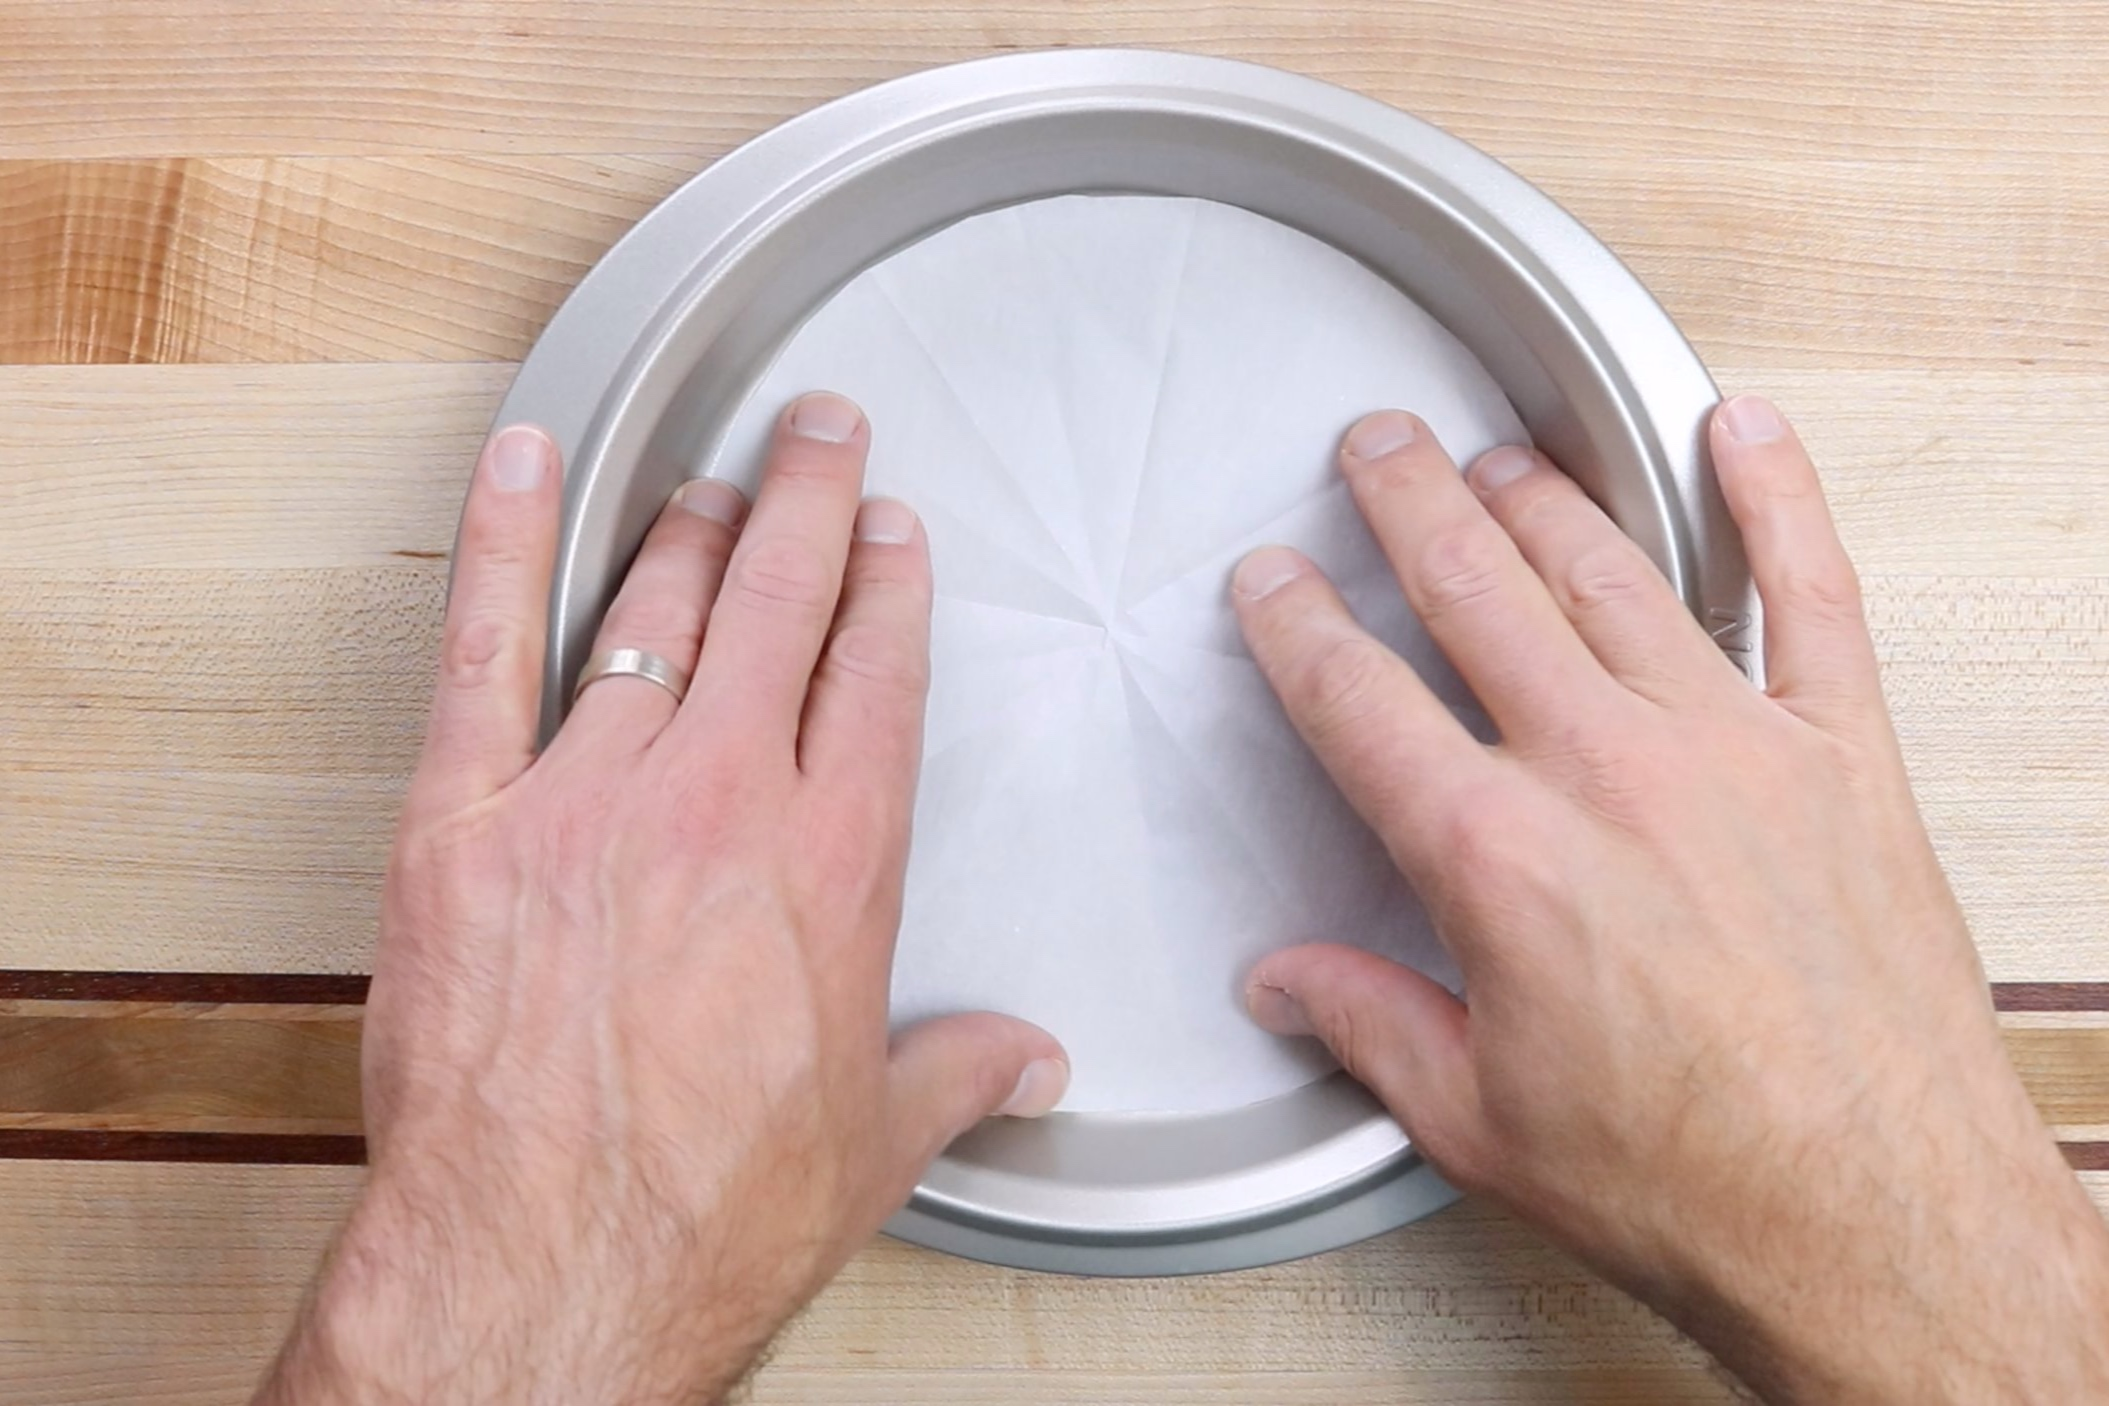 1. Pre-heat oven to 350 degrees and prepare 3 8-inch round cake pans with parchment paper and baking spray. -